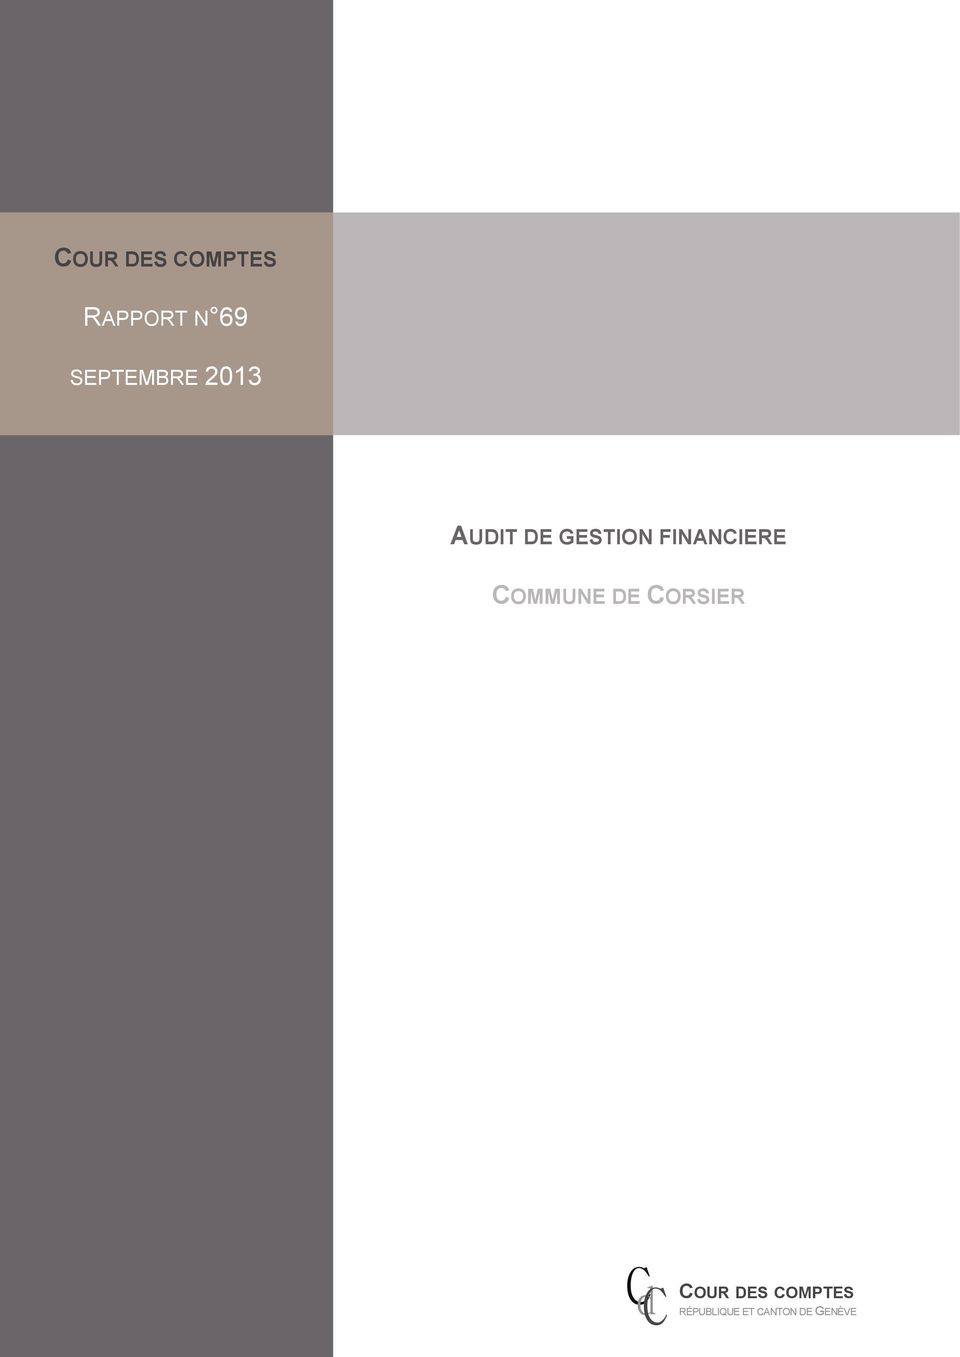 AUDIT DE GESTION